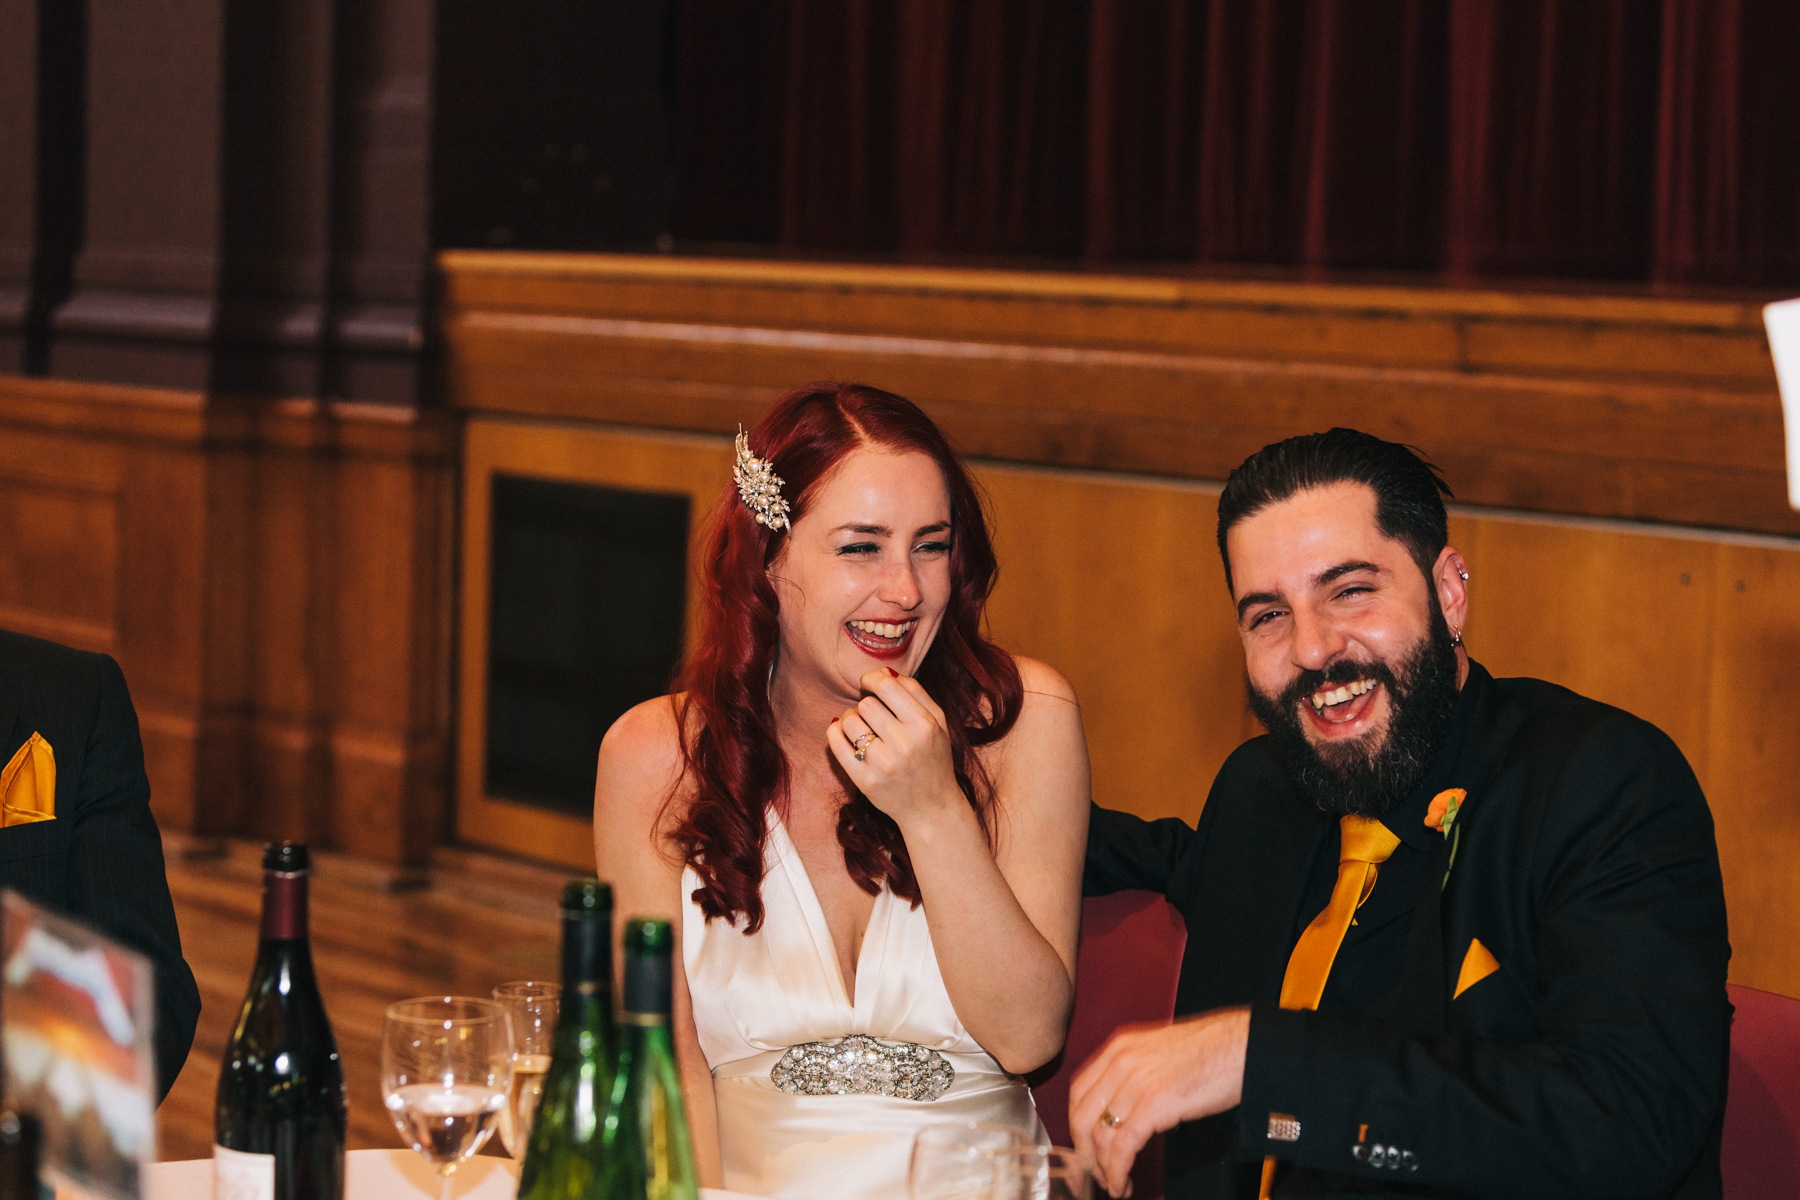 STOKE NEWINGTON TOWN HALL WEDDING-67